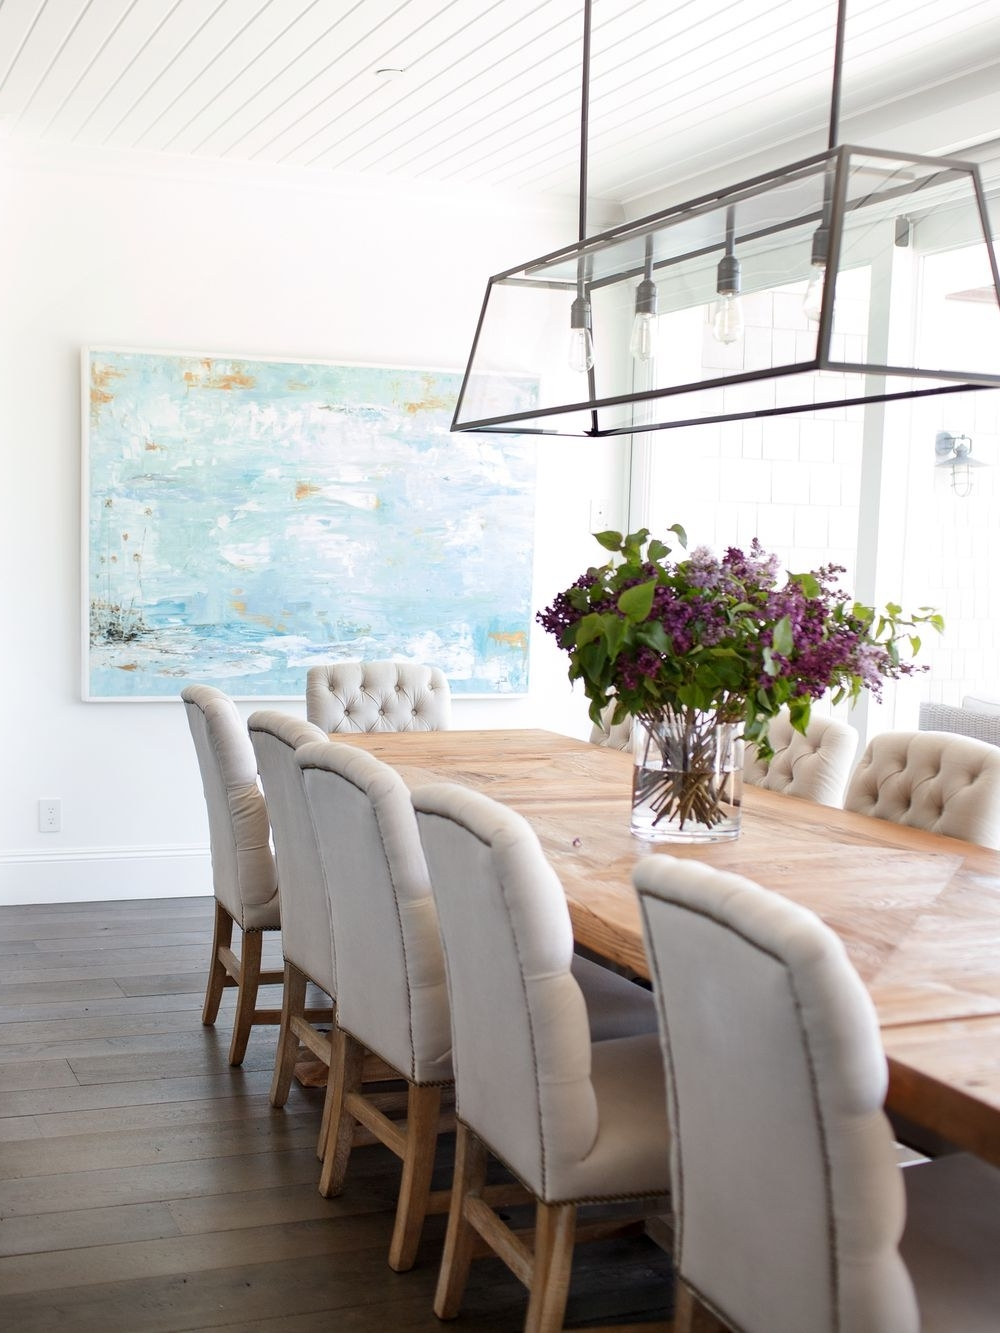 Most Popular Over Dining Tables Lights With Beachy Dining Room Beadboard Ceiling, Linear Dining Room Light (View 9 of 25)